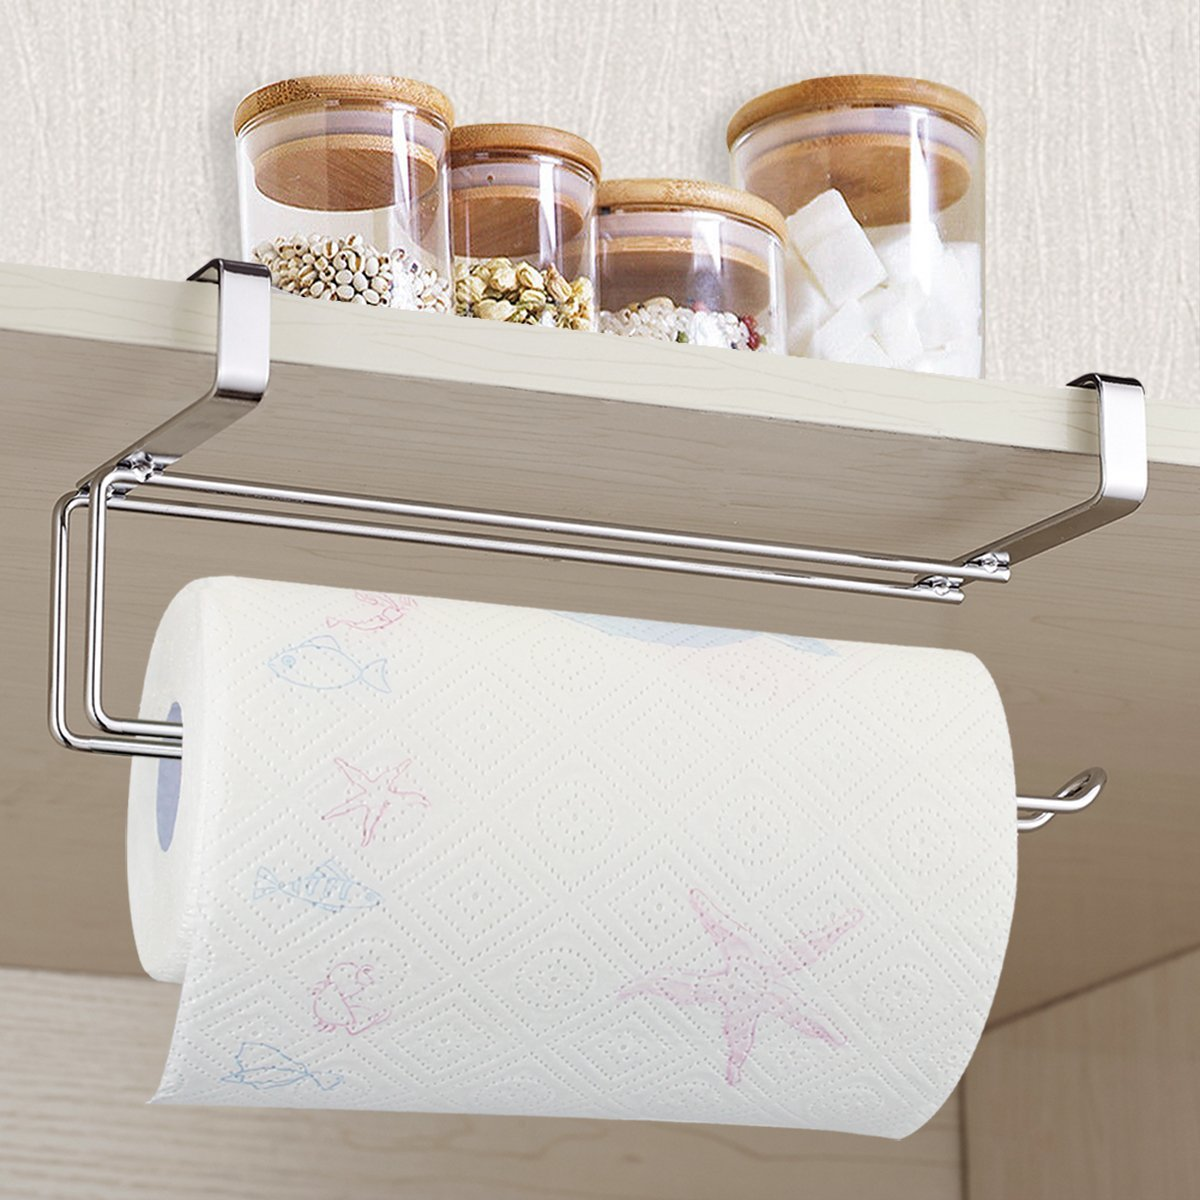 304 Stainless Steel Kitchen Tissue Holder Hanging Bathroom Toilet Roll  Paper Holder Towel Rack Kitchen Cabinet Door Hook Holder